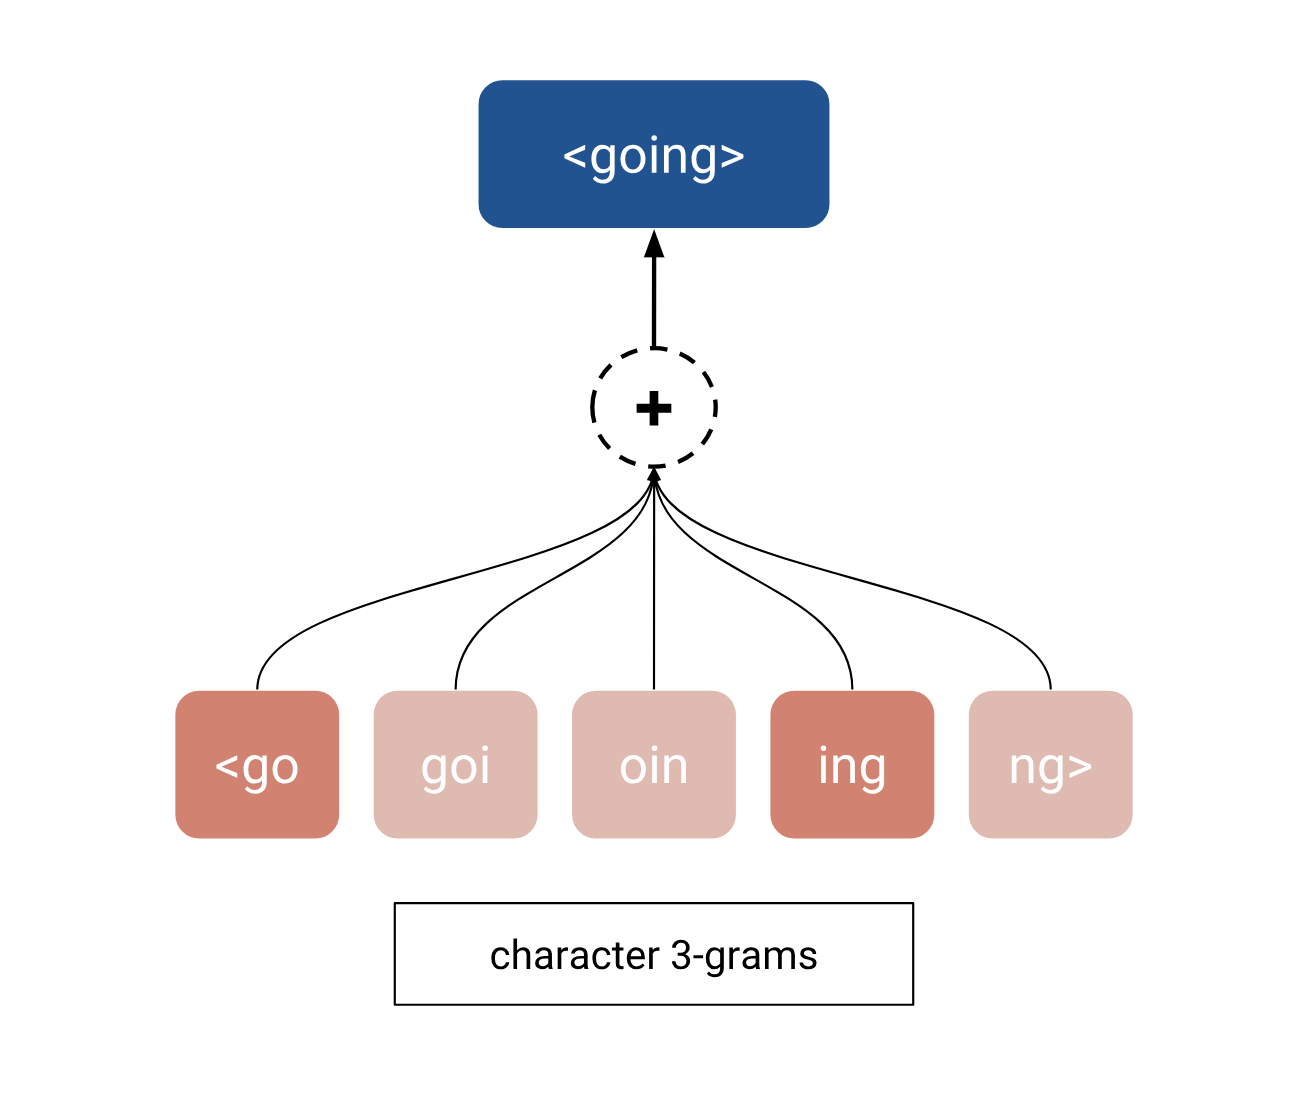 """The embedding for """"going"""" is computed as the sum of its character 3-gram embeddings"""